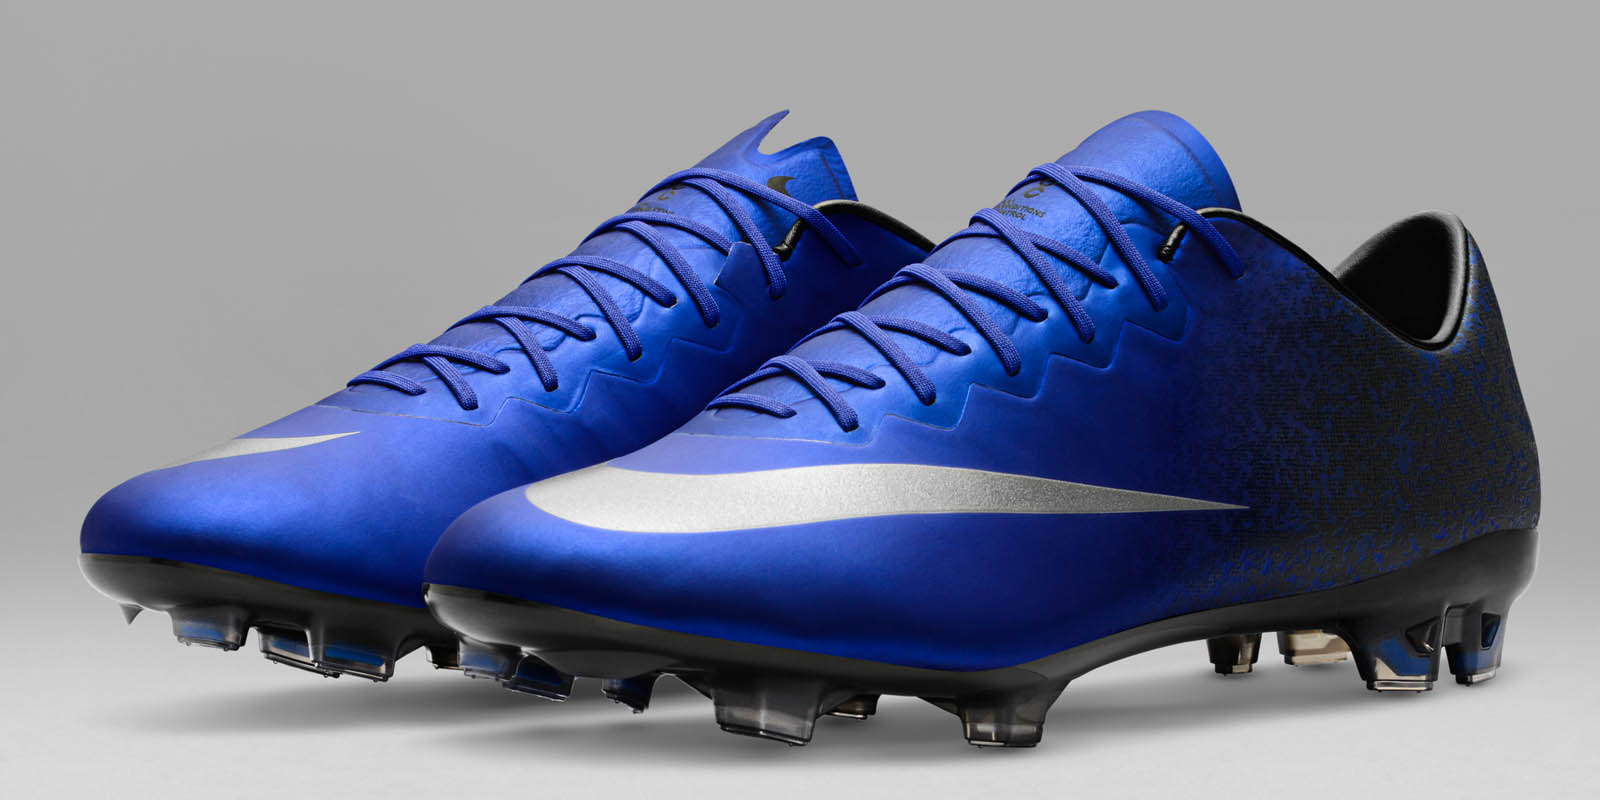 soccer boots 2016 blue soccer shoes